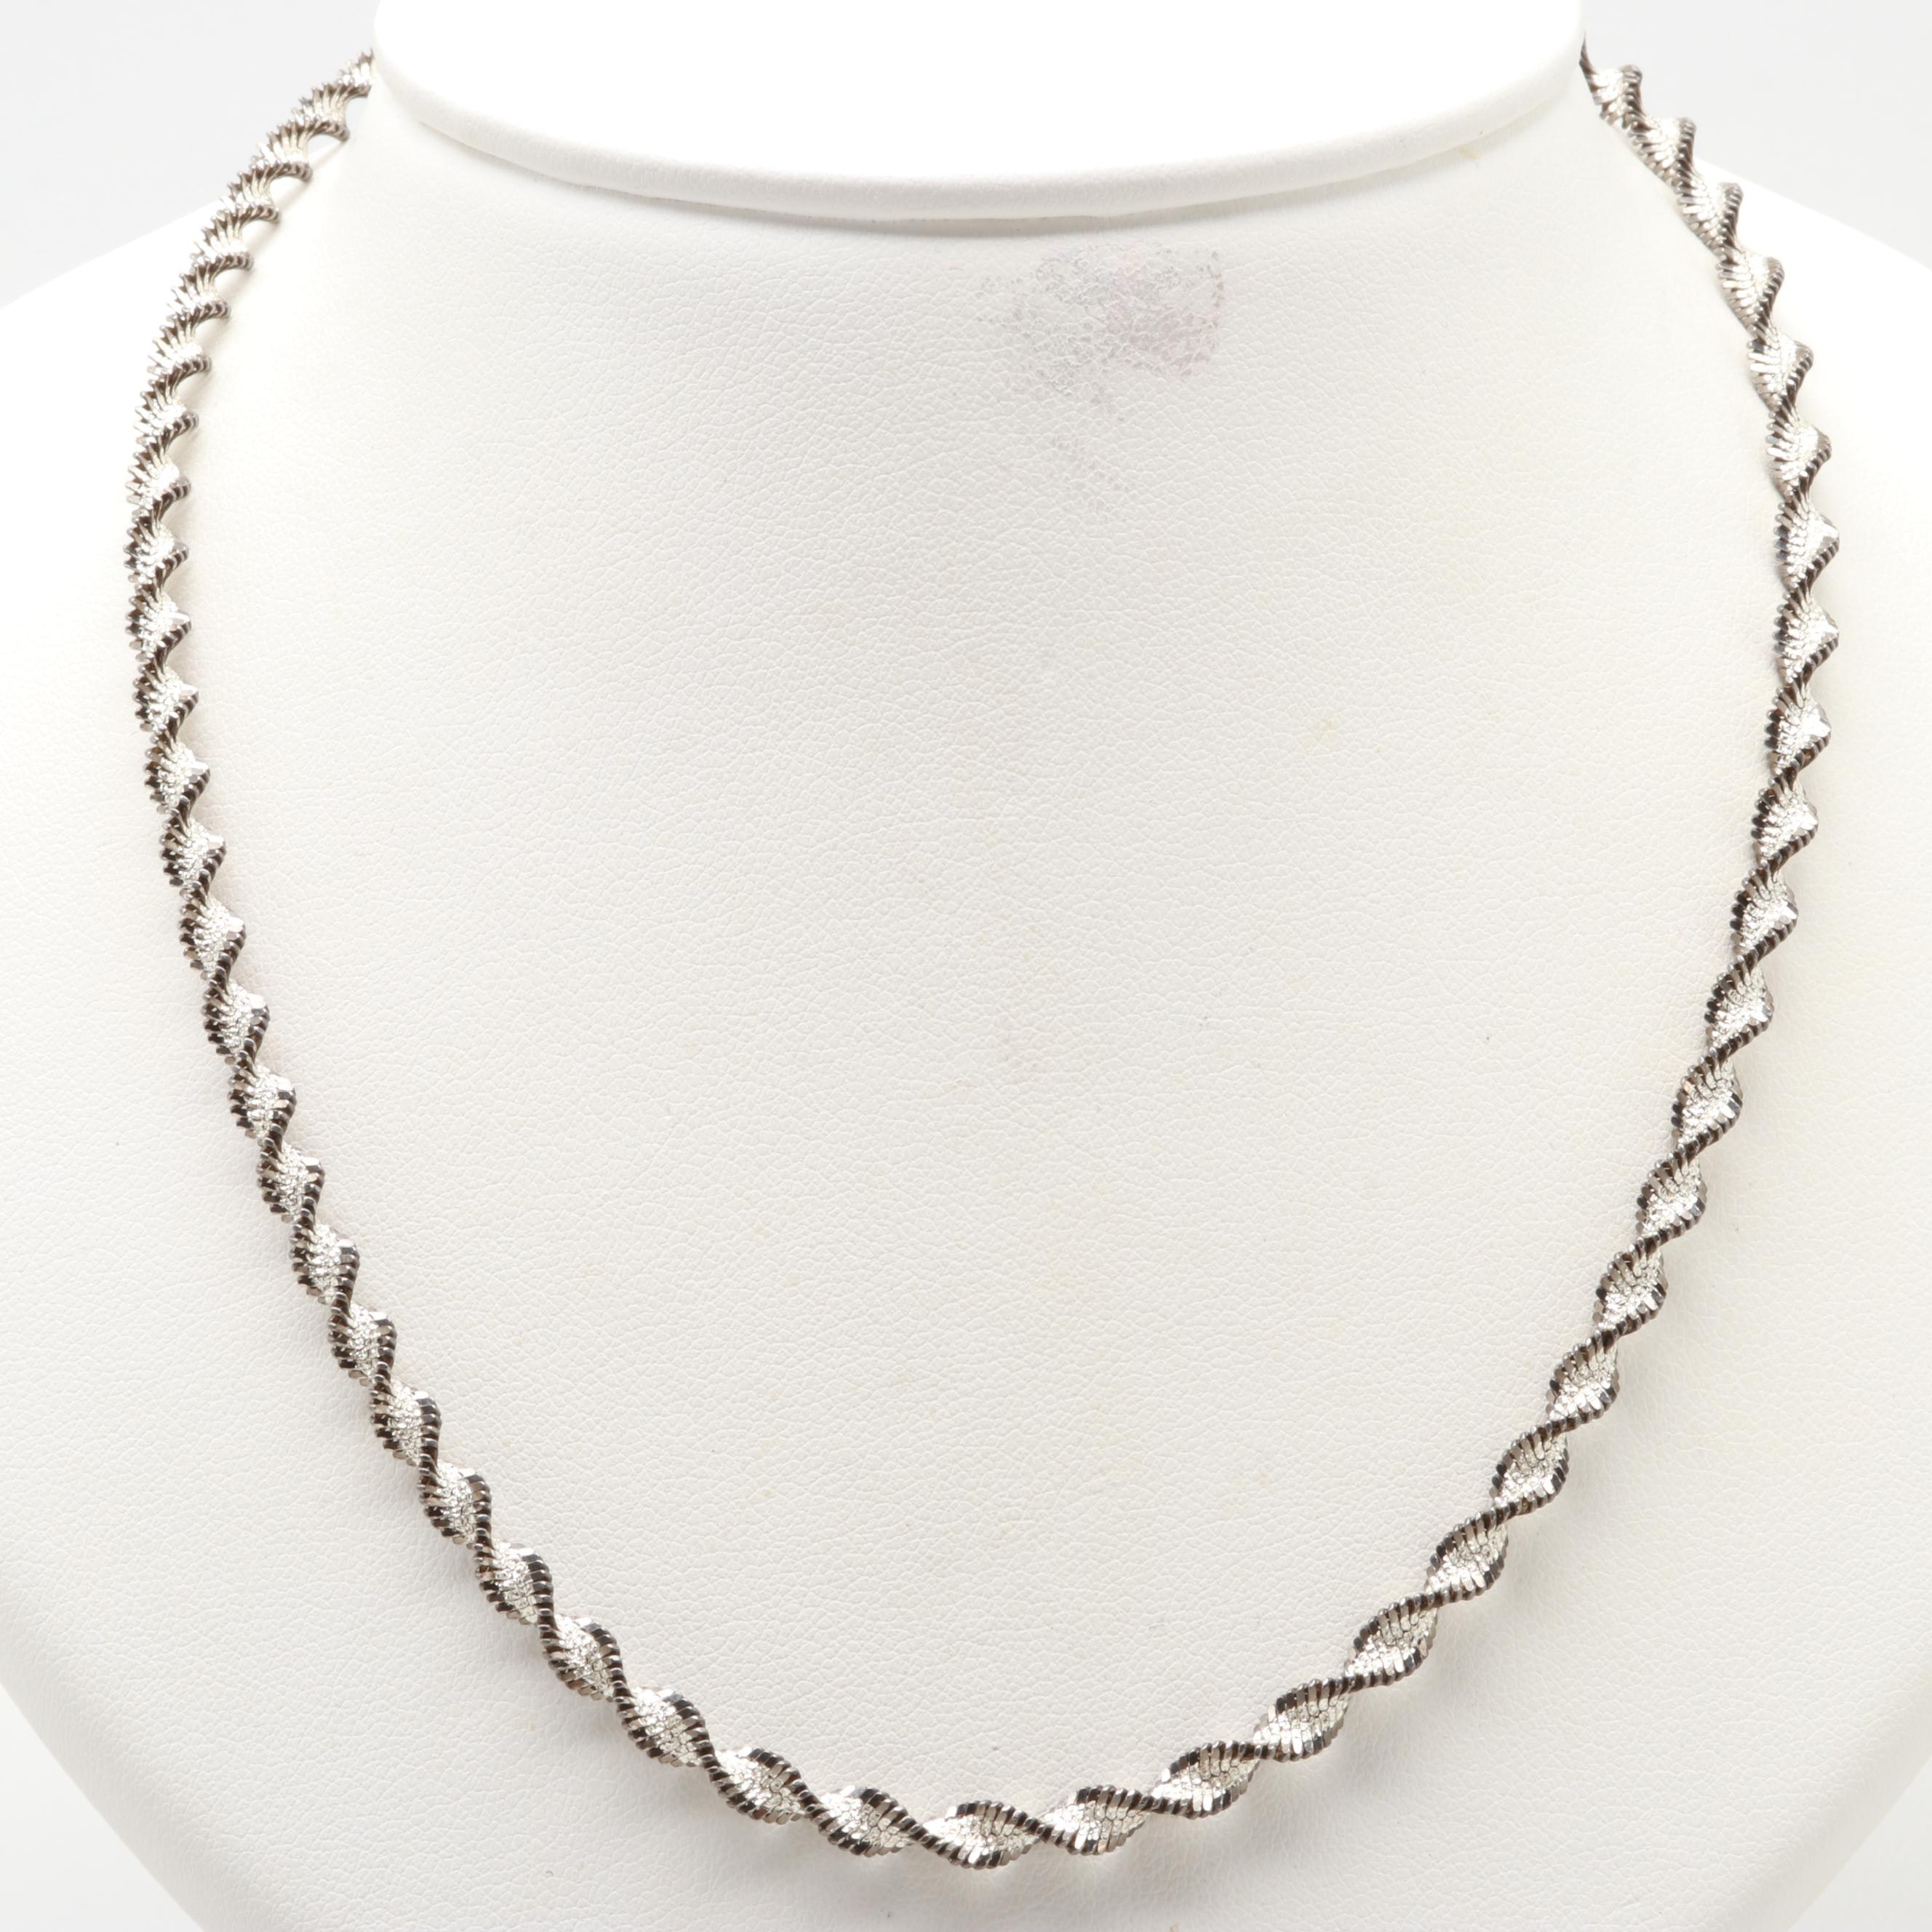 Sterling Silver Twisted Herringbone Necklace with Black Accents